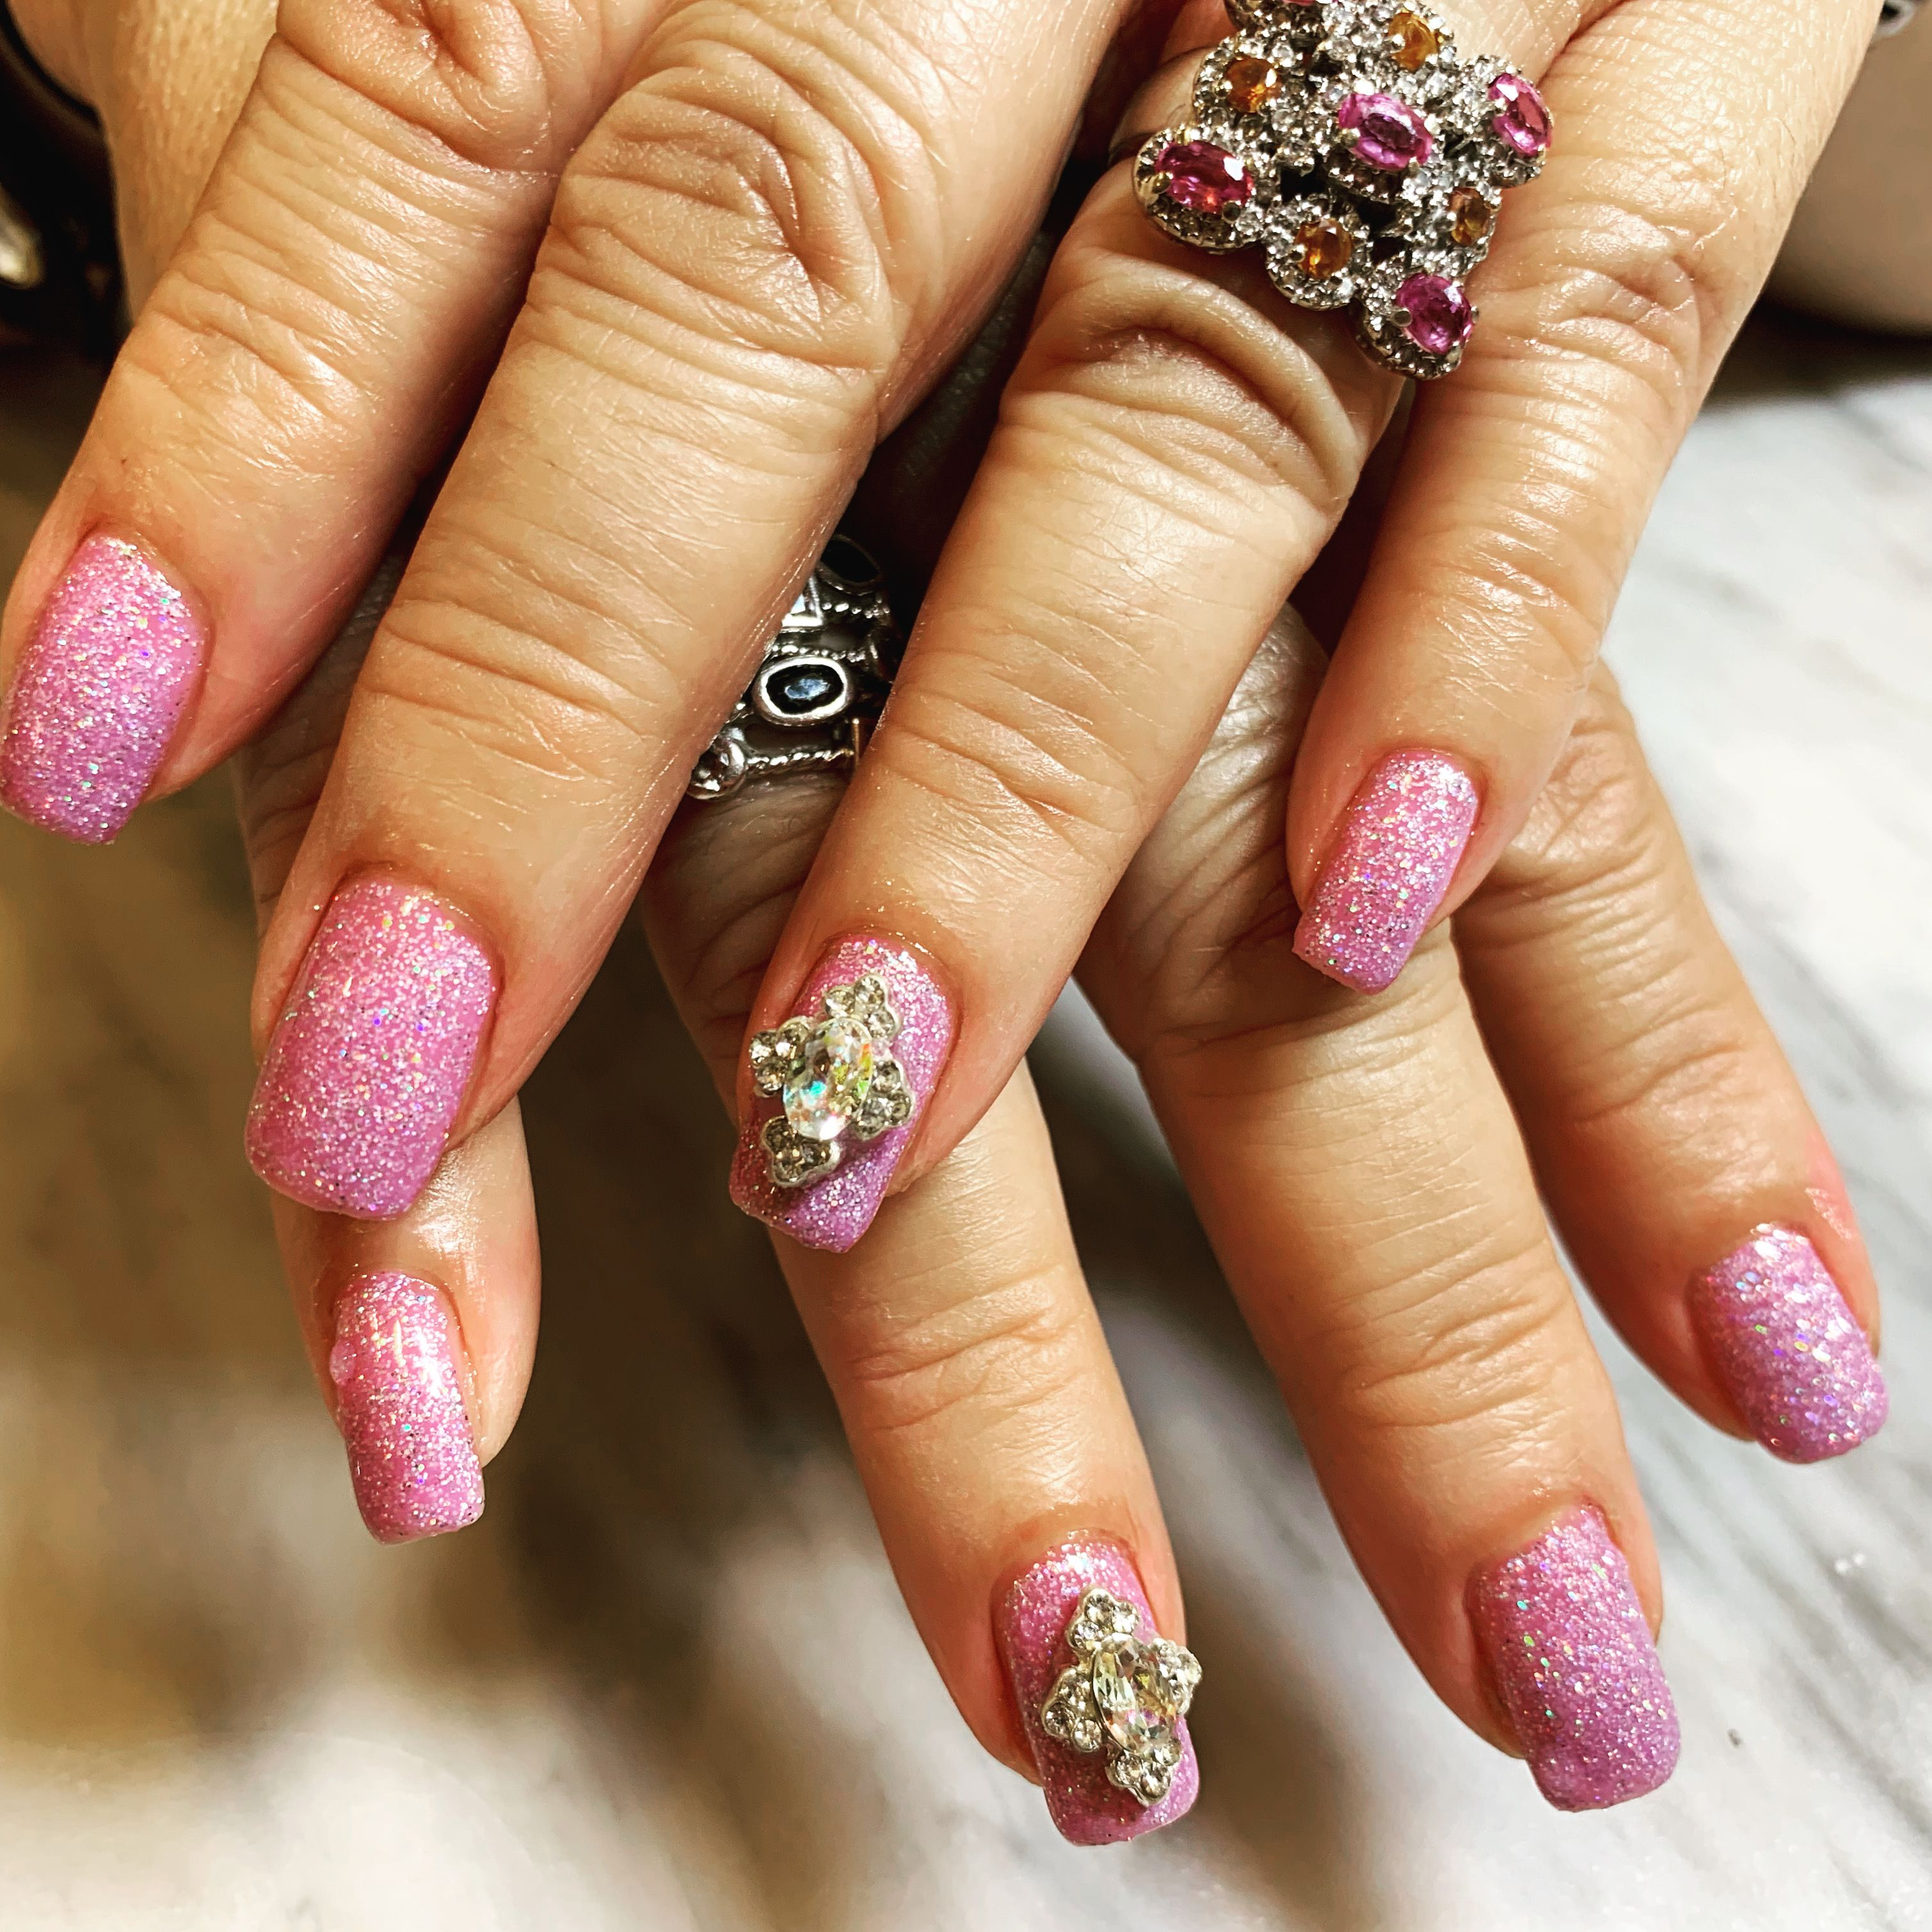 Pin by Palace Salon Nails & Spa on Nails & Spa in 2020 ...